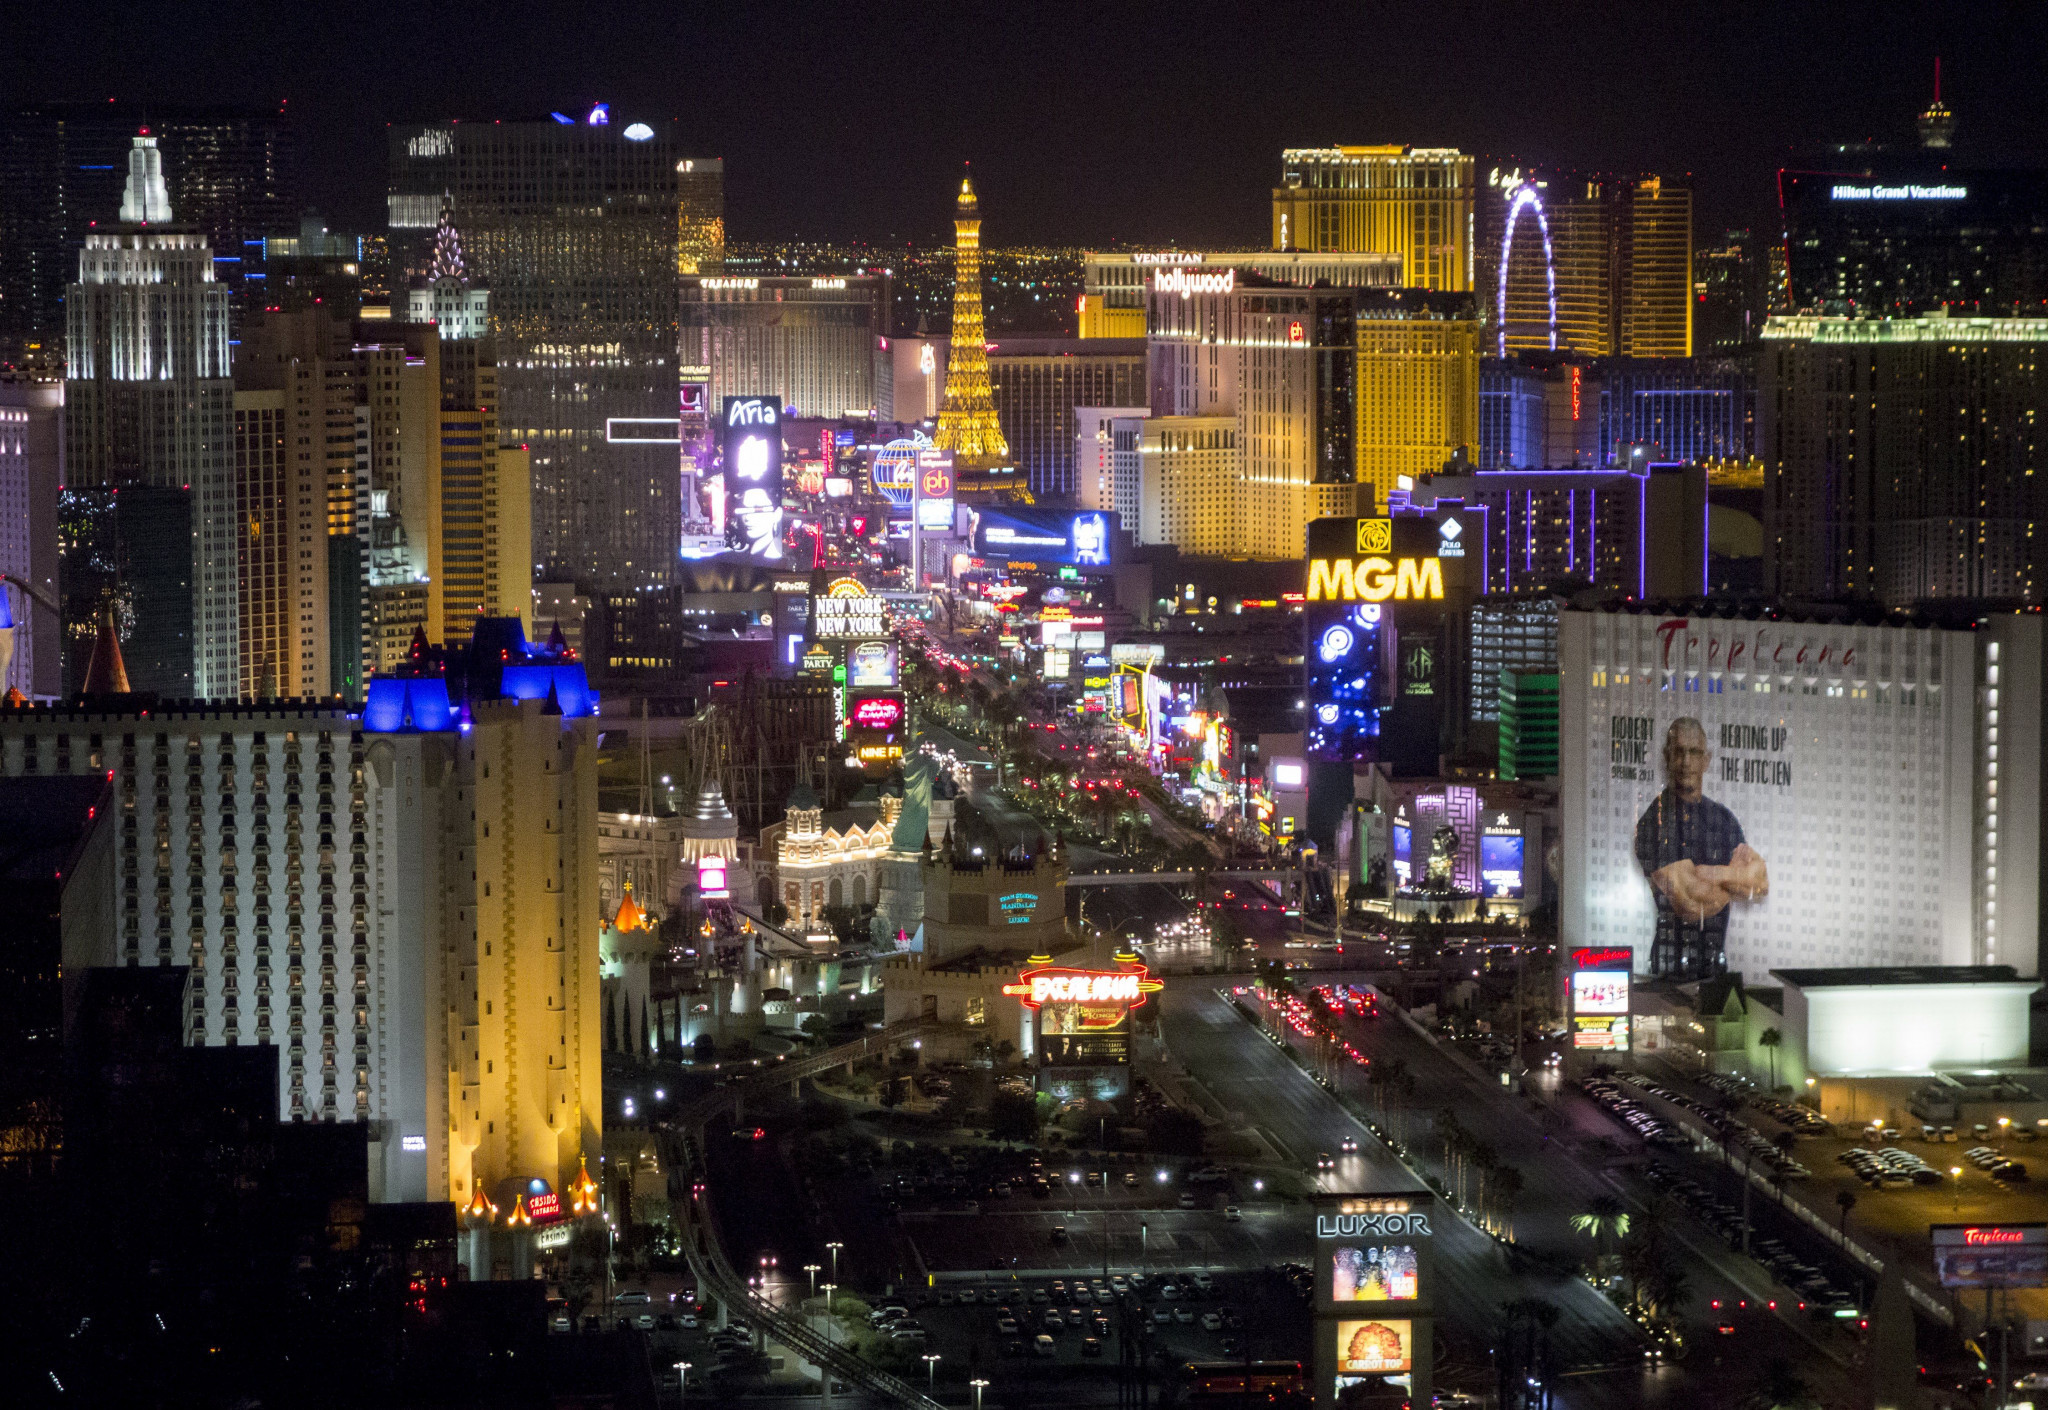 Las Vegas benefited economically and socially from hosting this year's World Men's Curling Championships, an economic impact study has claimed ©Getty Images